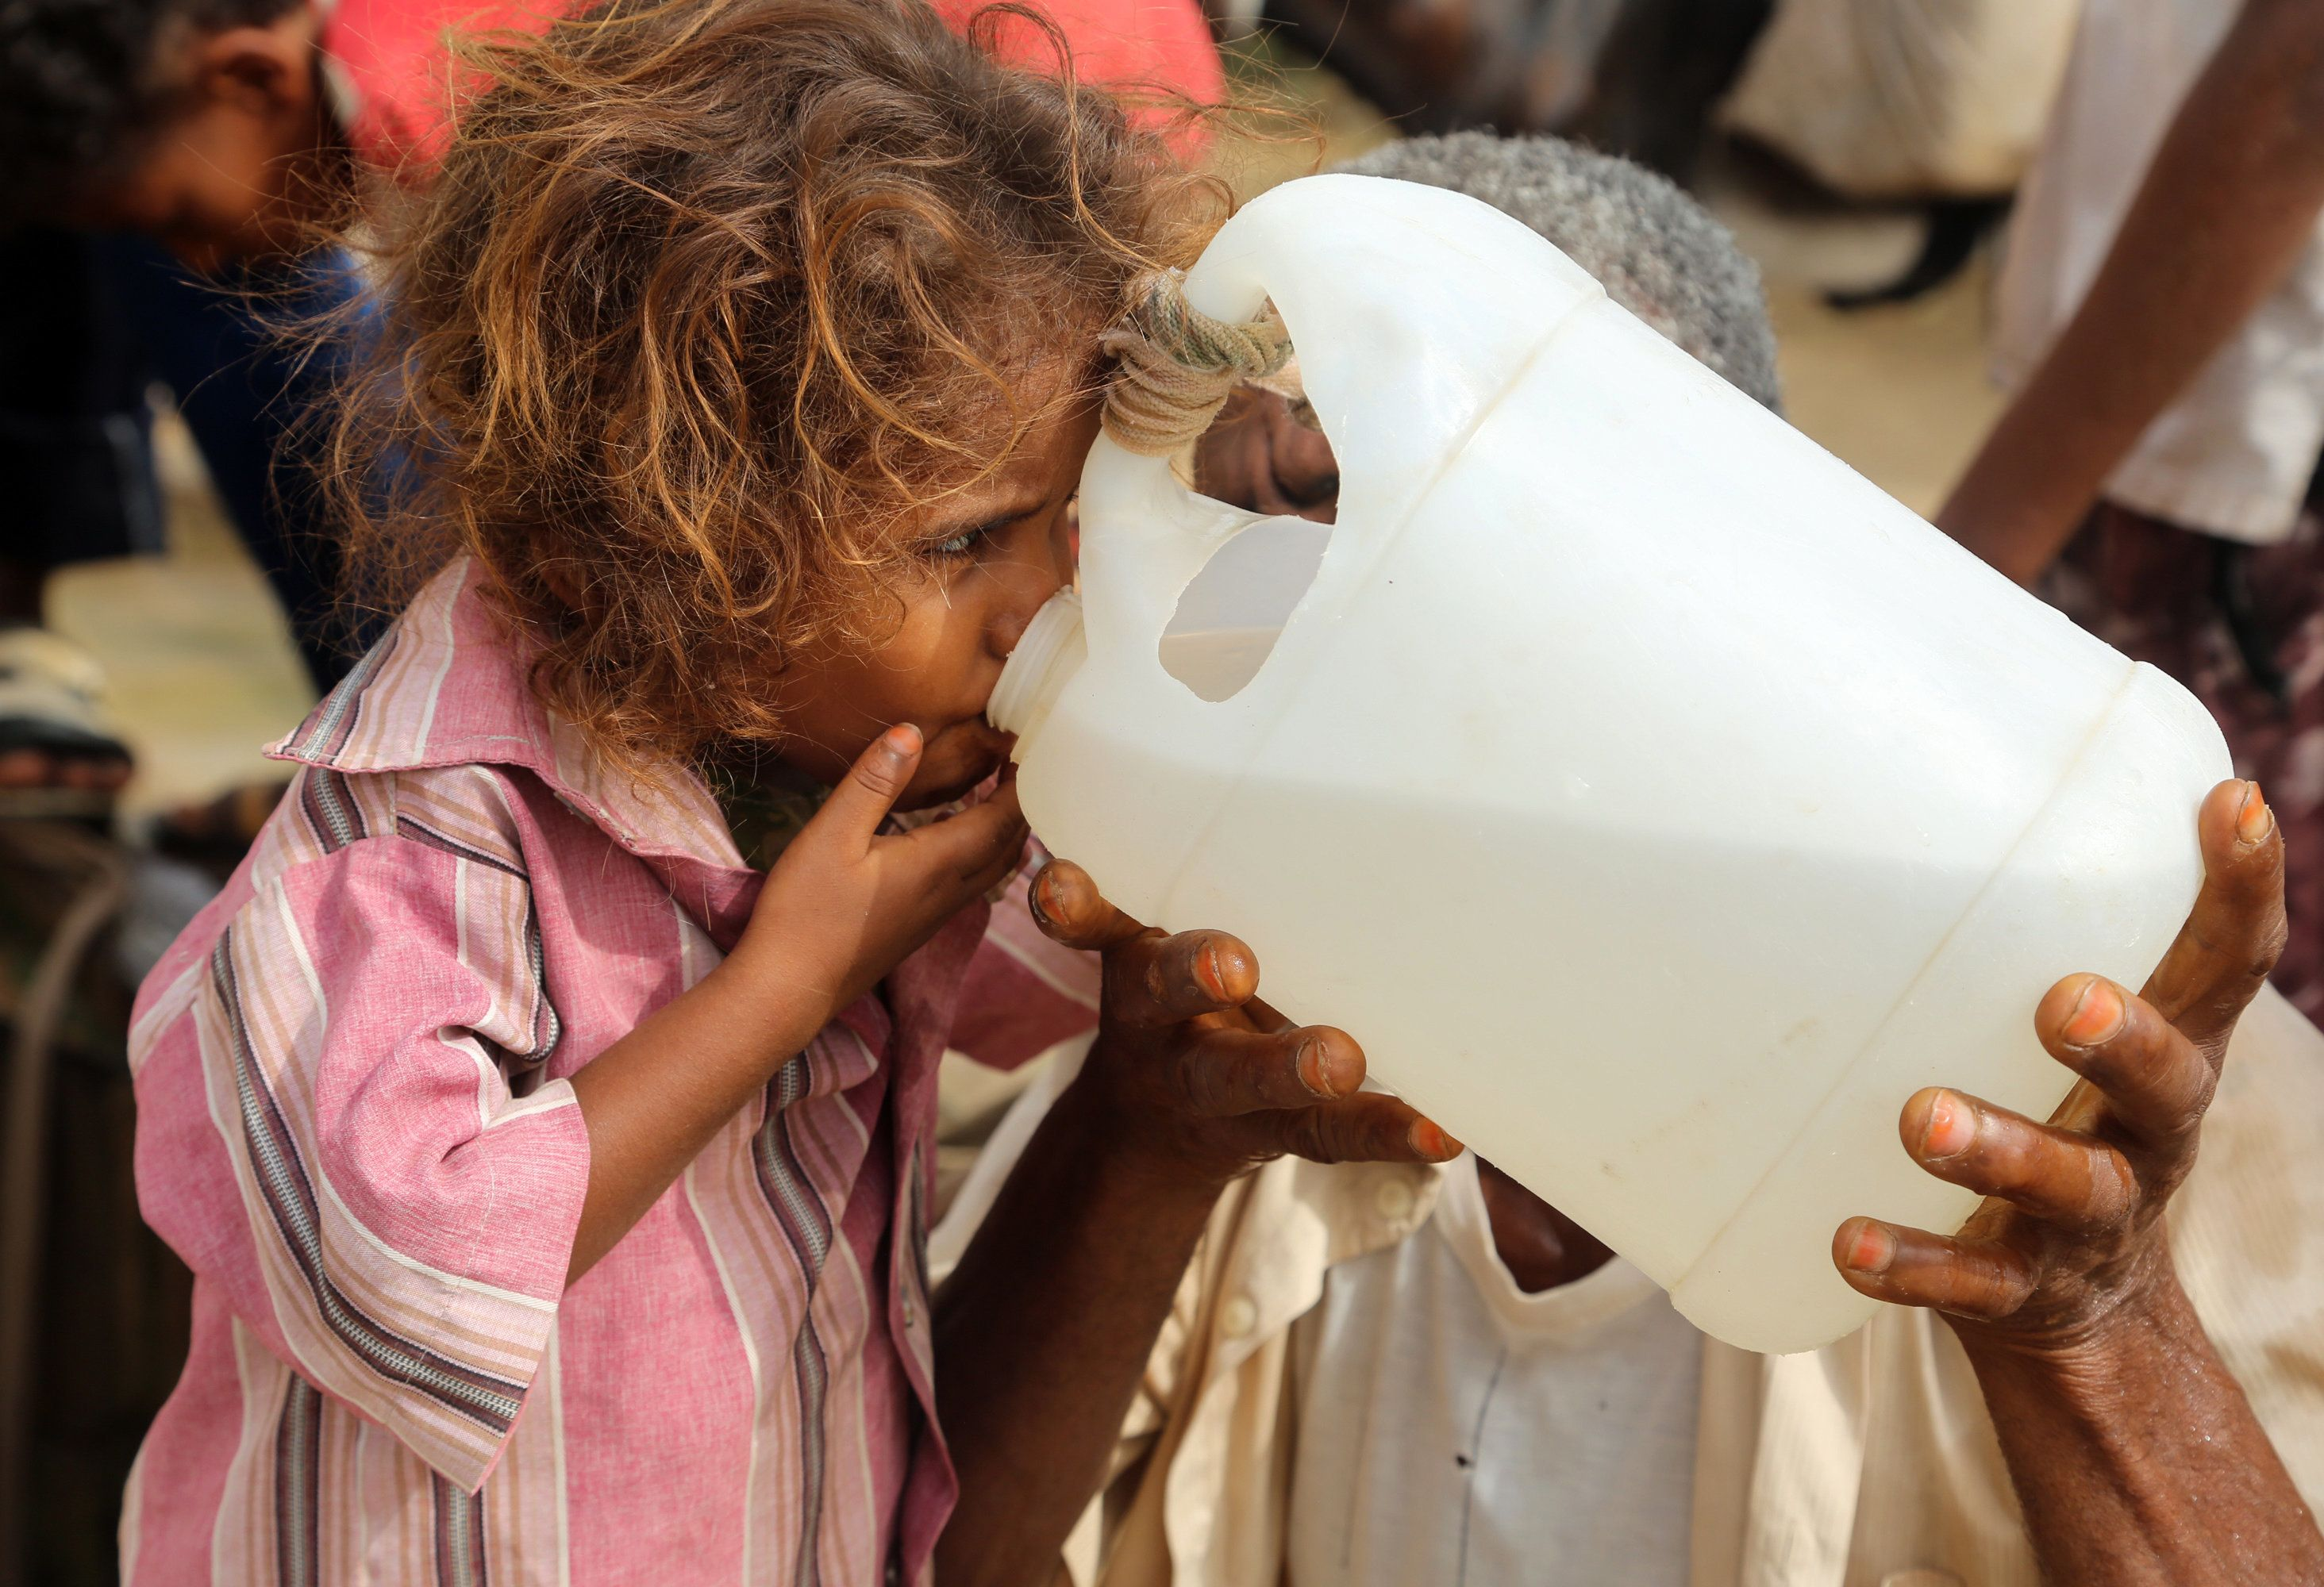 A Yemeni girl drinks water collected from a well in an impoverished village on the outskirts of the port city of Hodeidah, on July 23, 2017, as the region has been facing acute water shortages due to drought conditions. / AFP PHOTO / Abdo HYDER        (Photo credit should read ABDO HYDER/AFP/Getty Images)